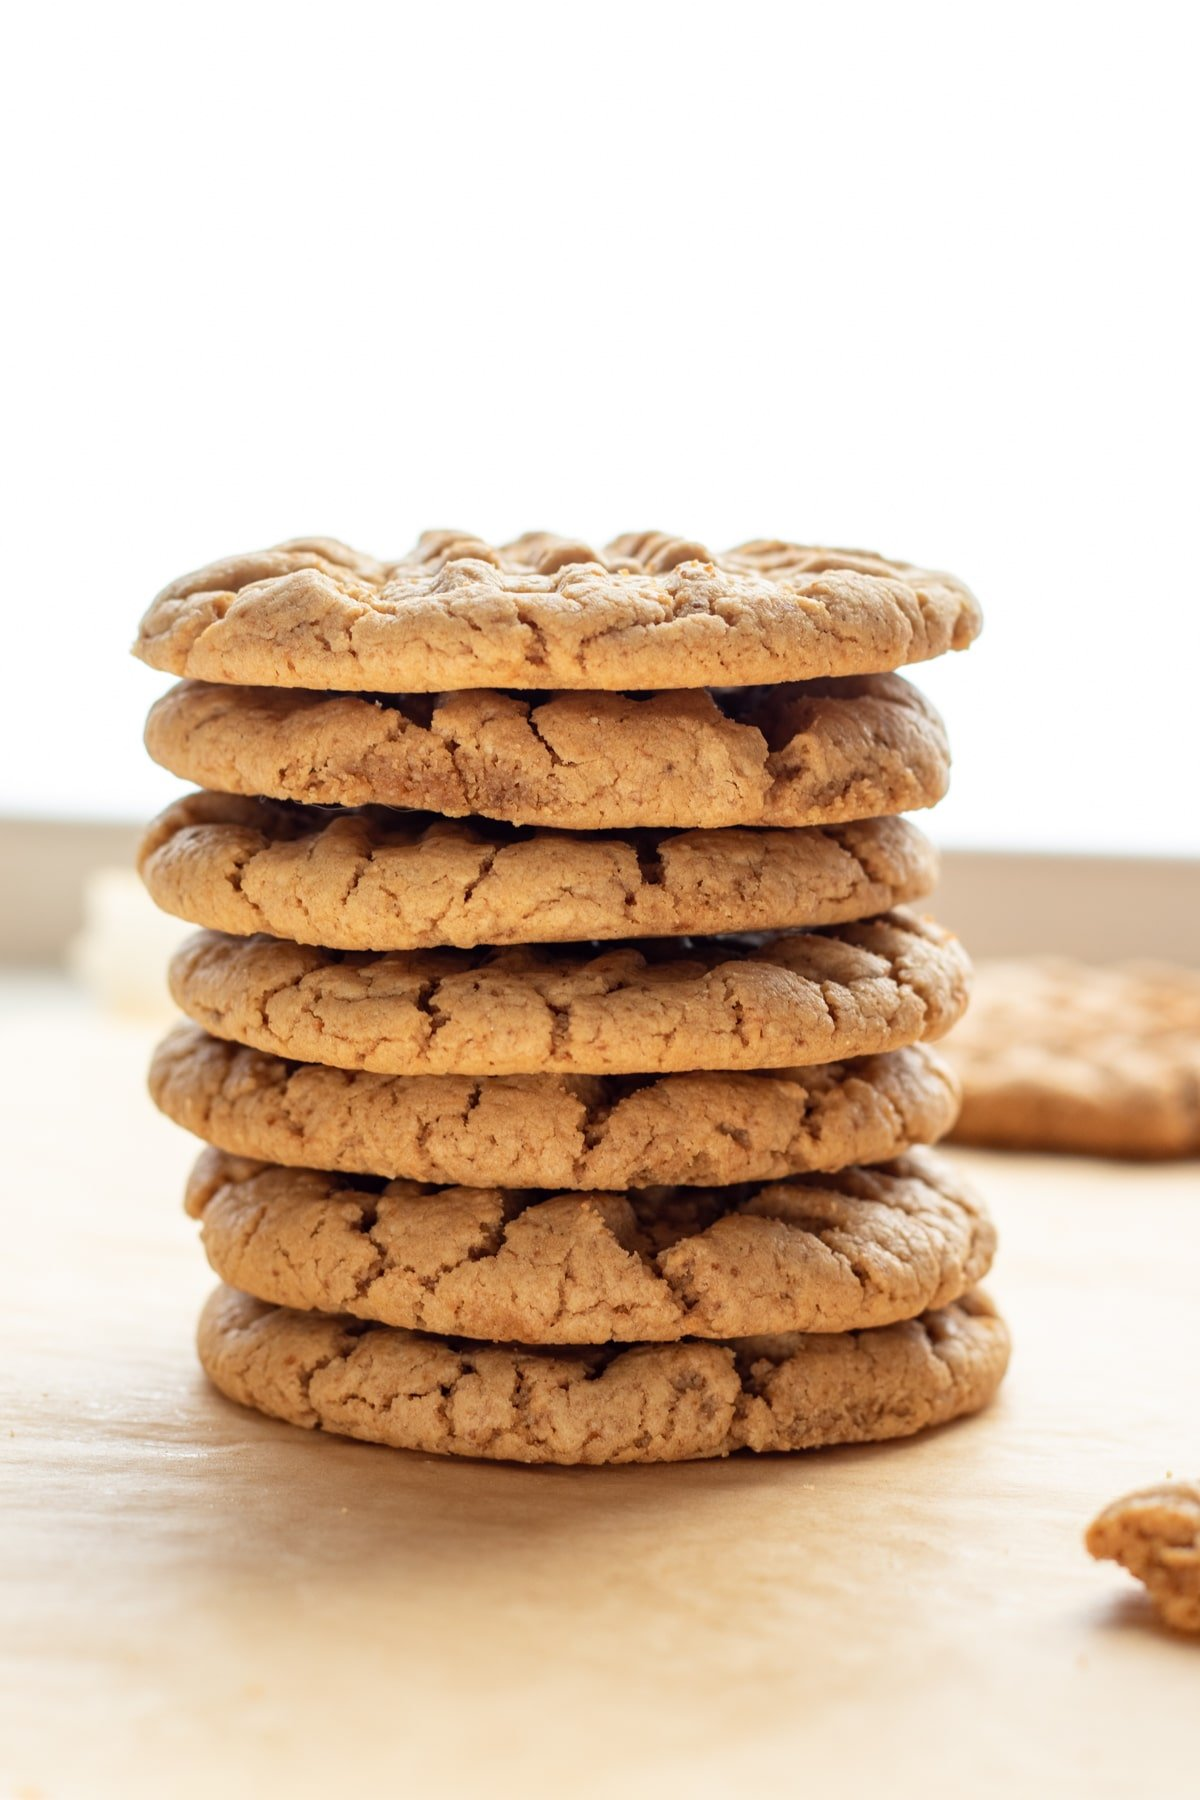 a stack of 7 peanut butter cookies